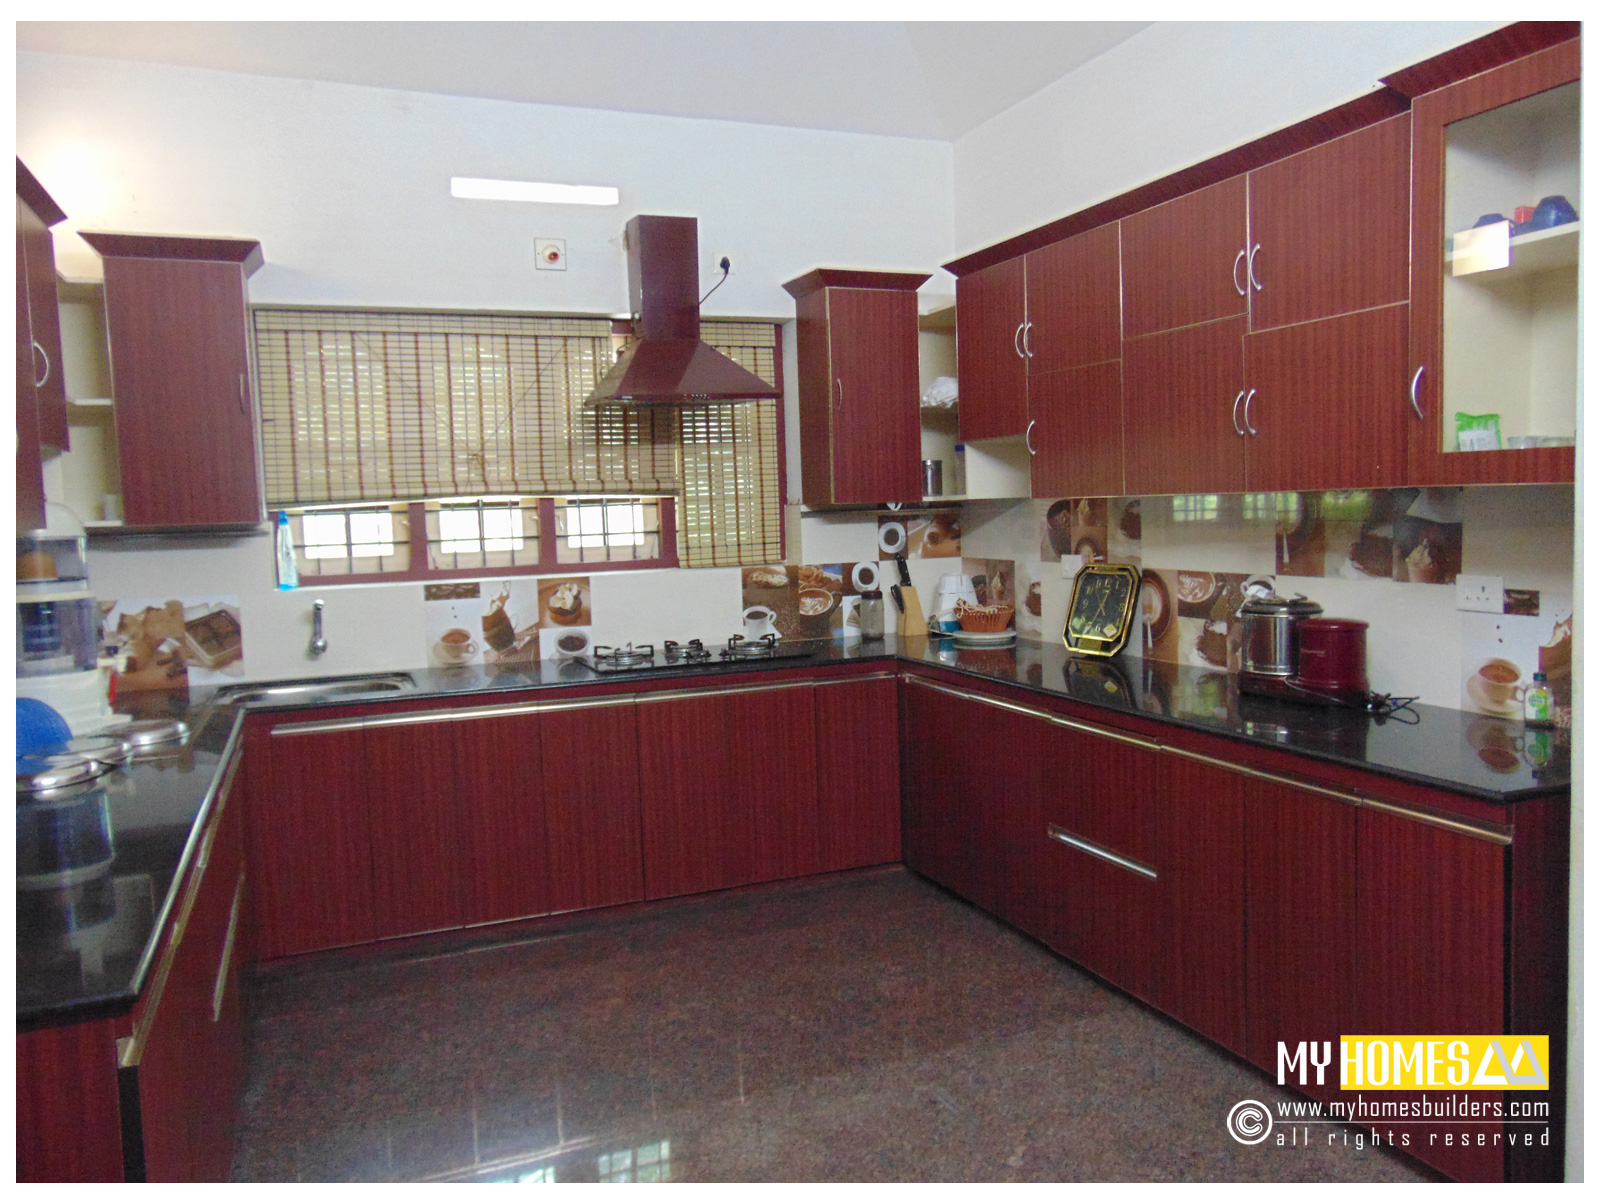 New kitchen designs in kerala home photos by design for Latest kitchen designs